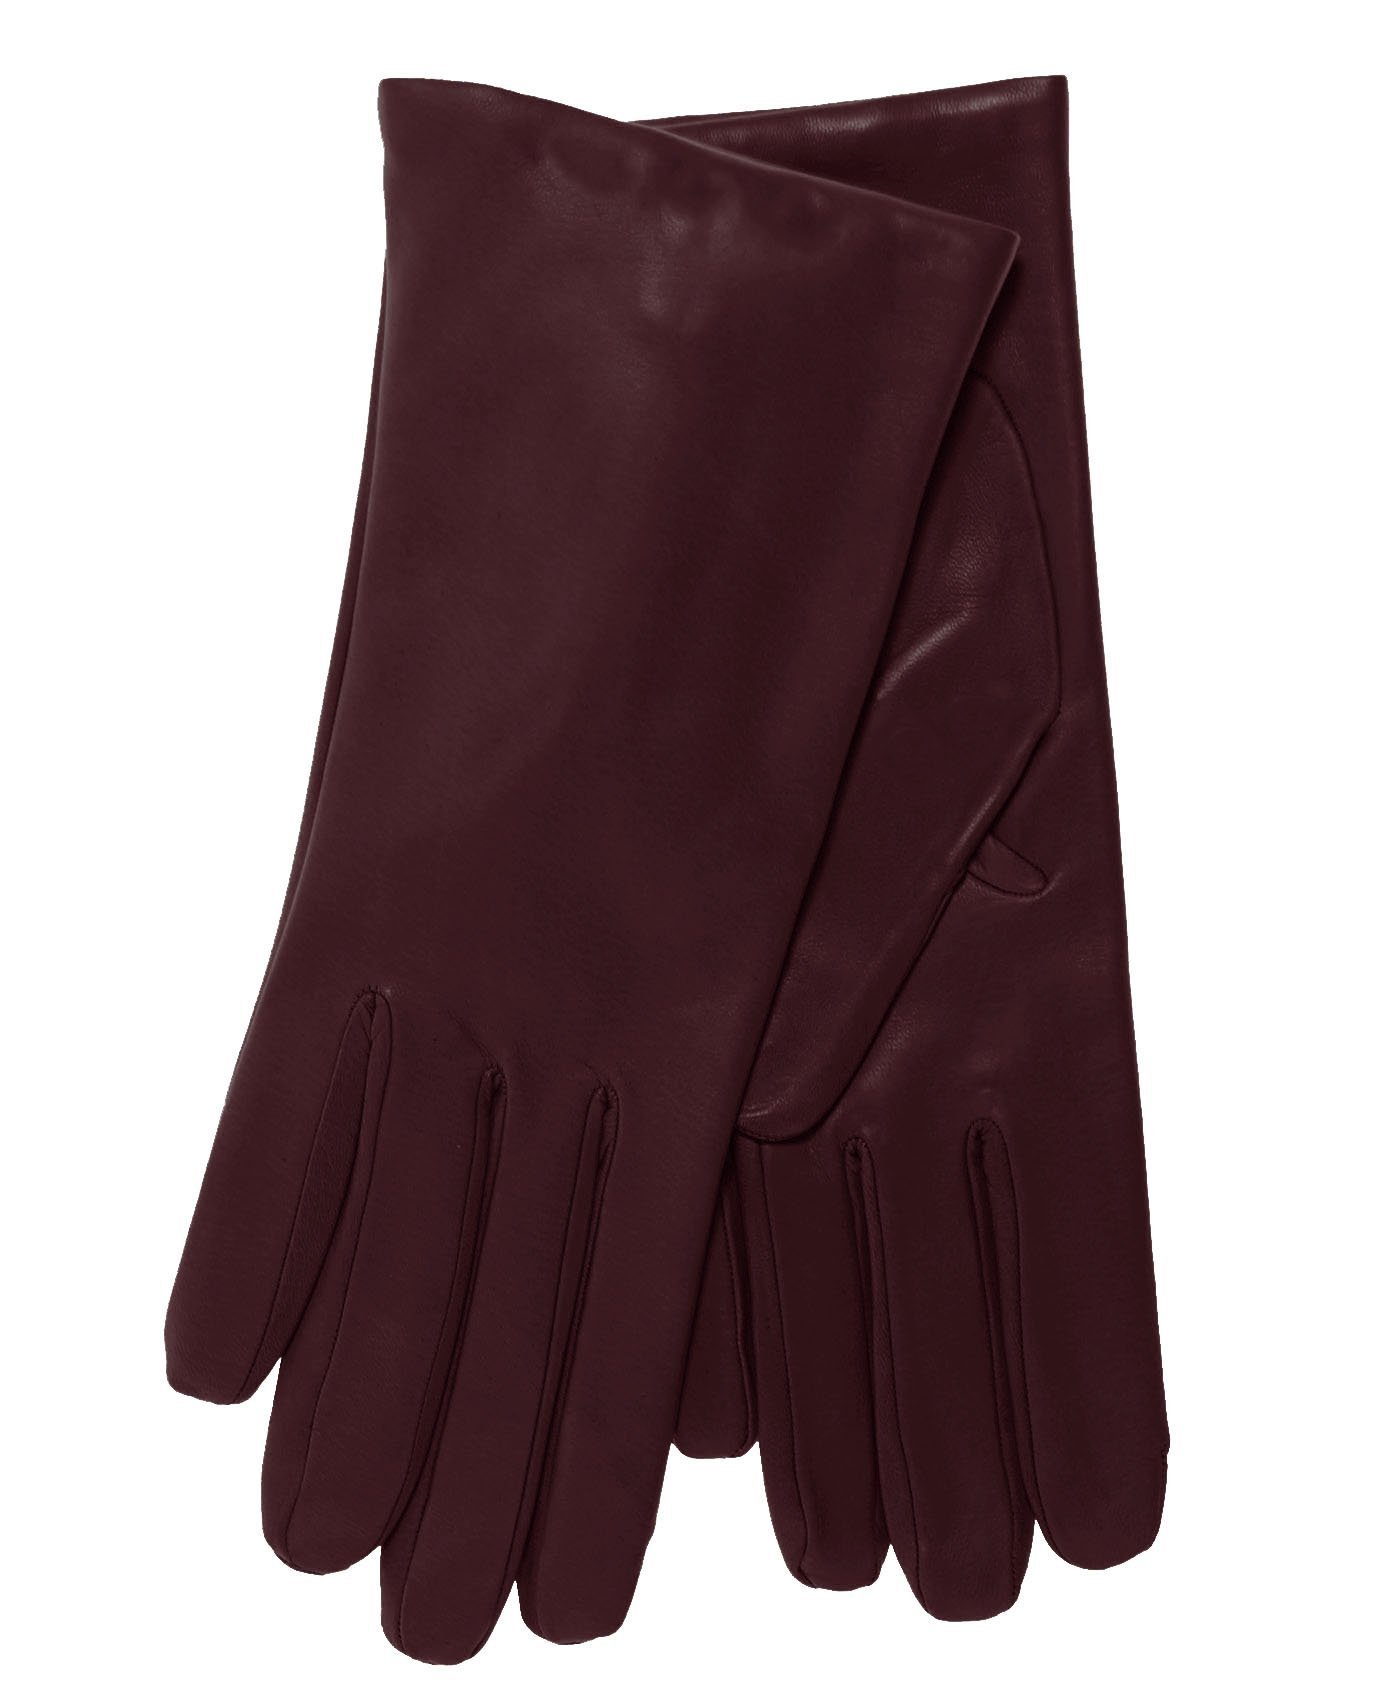 Fratelli Orsini Everyday Women's Italian Cashmere Lined Leather Gloves Size 7 1/2 Color Cordovan by Fratelli Orsini Everyday